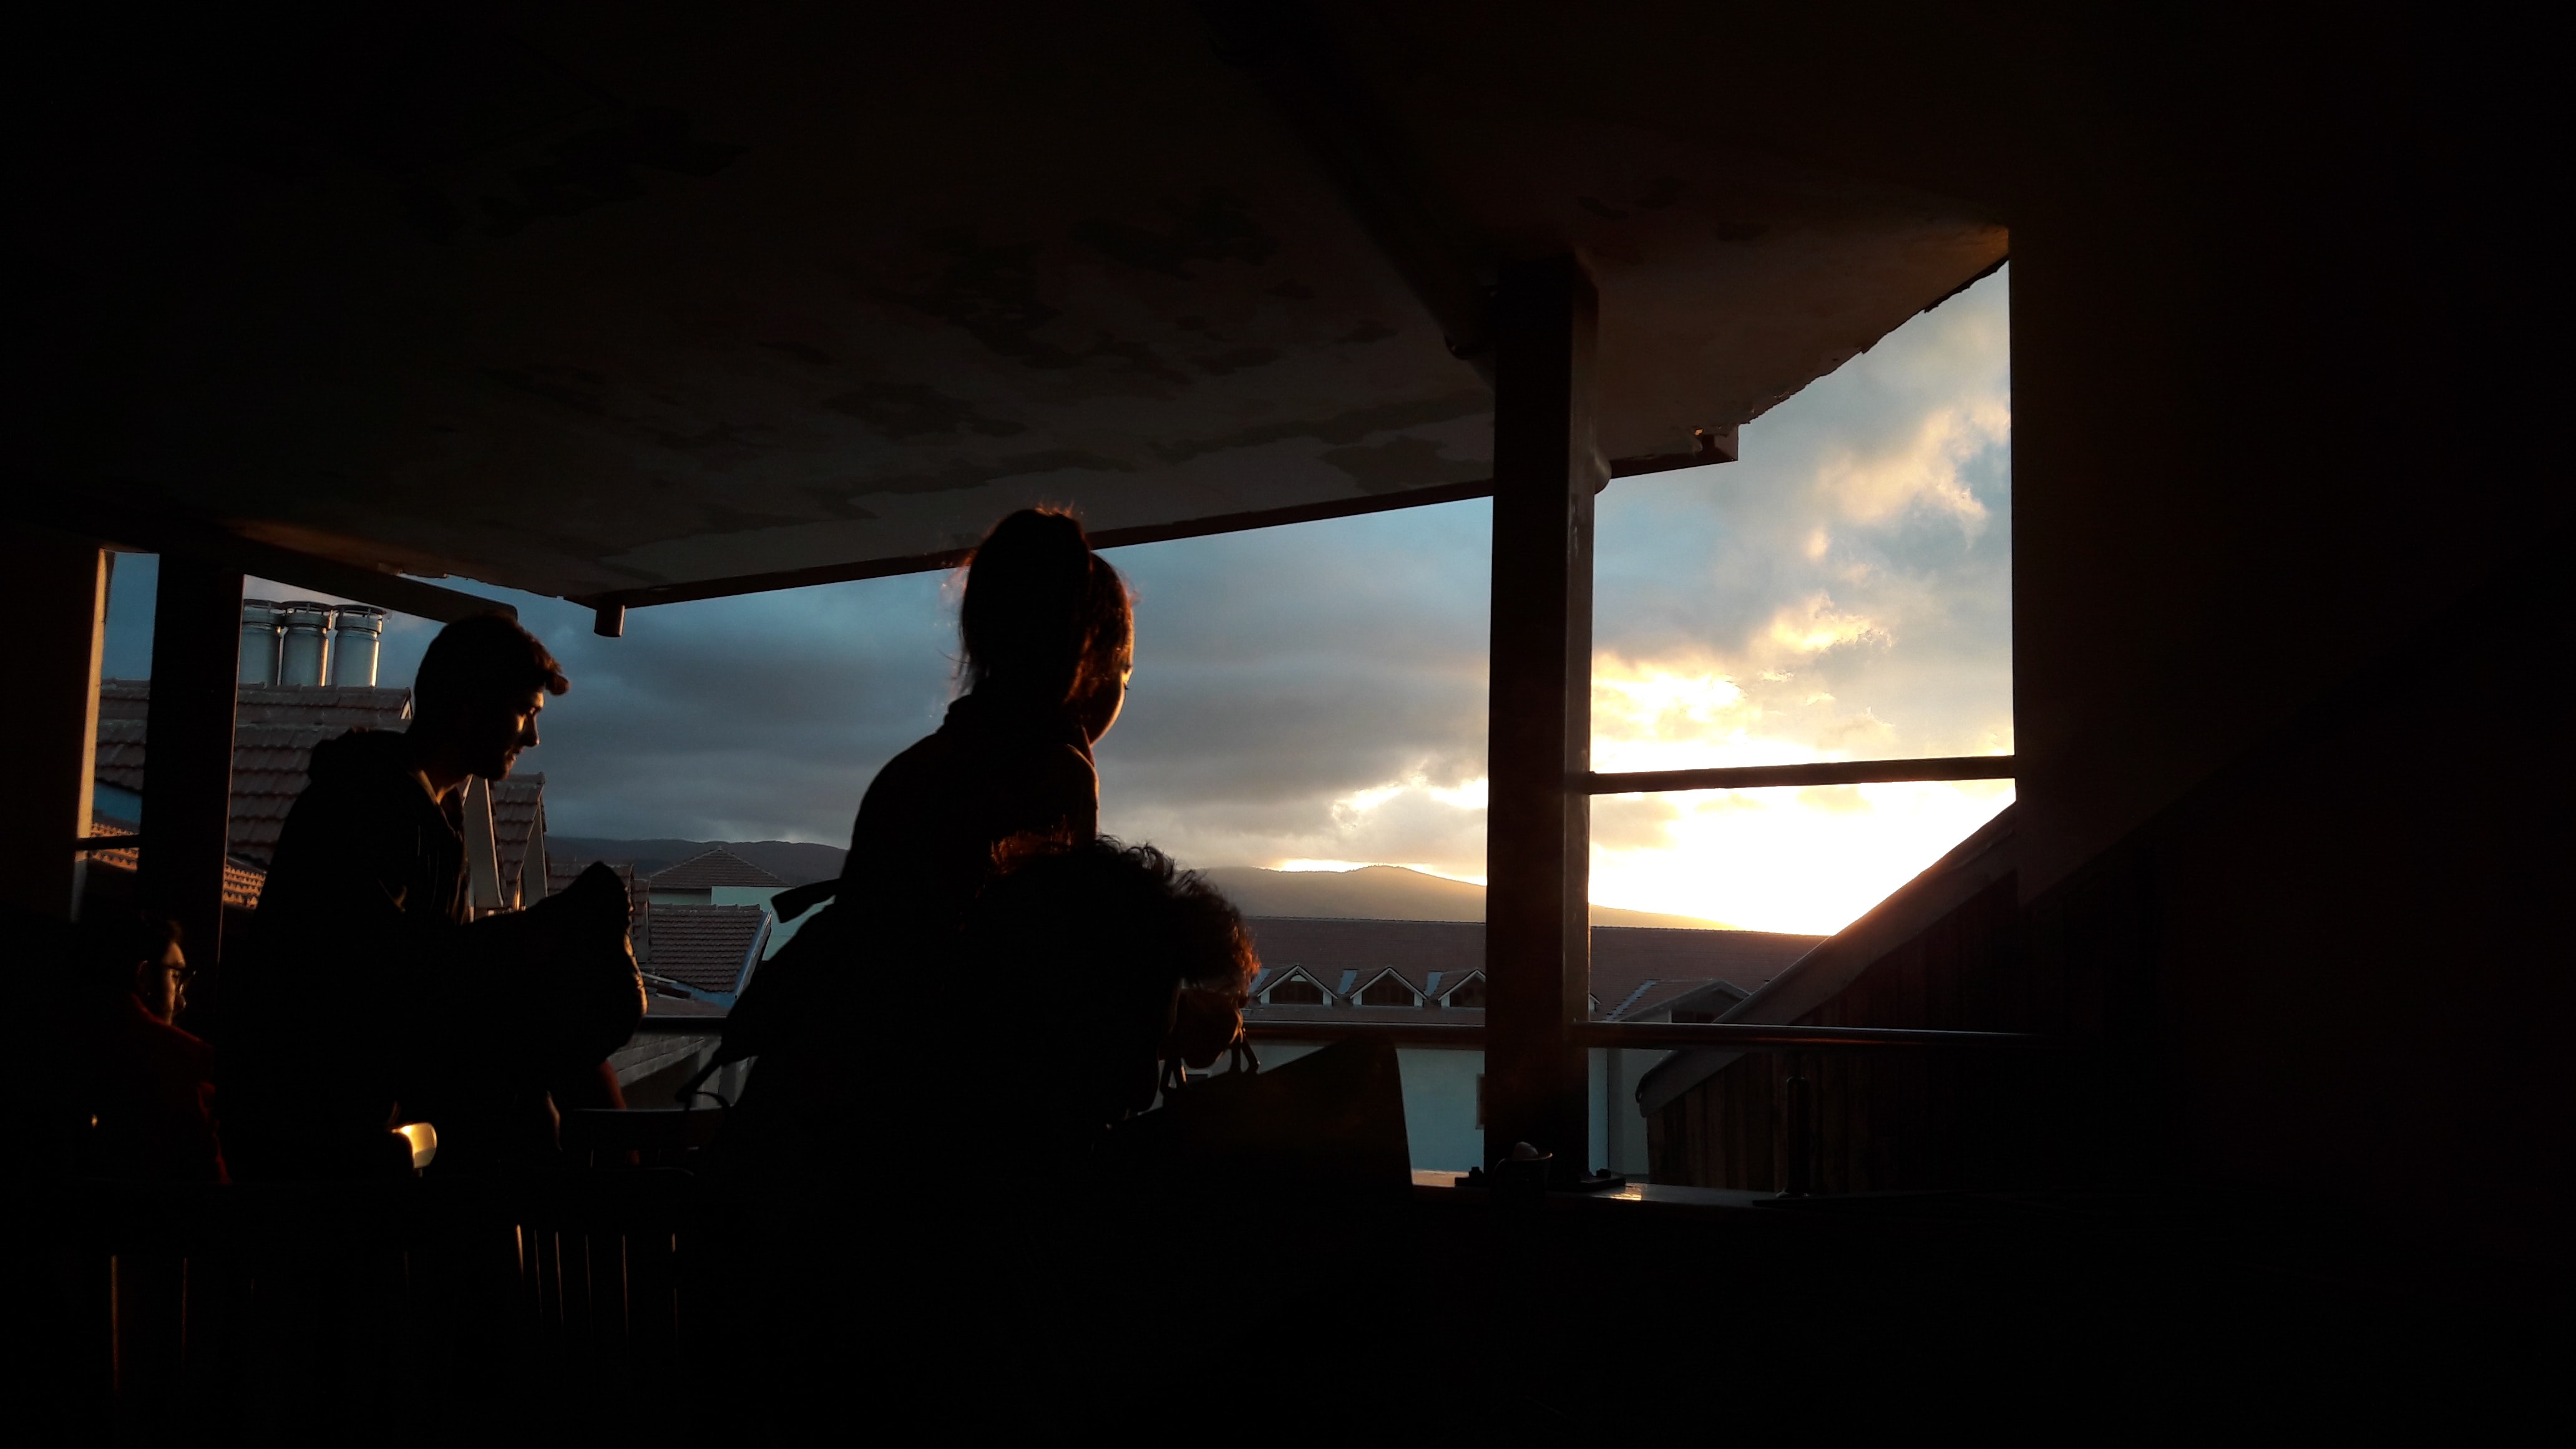 silhouette of two persons standing near the window